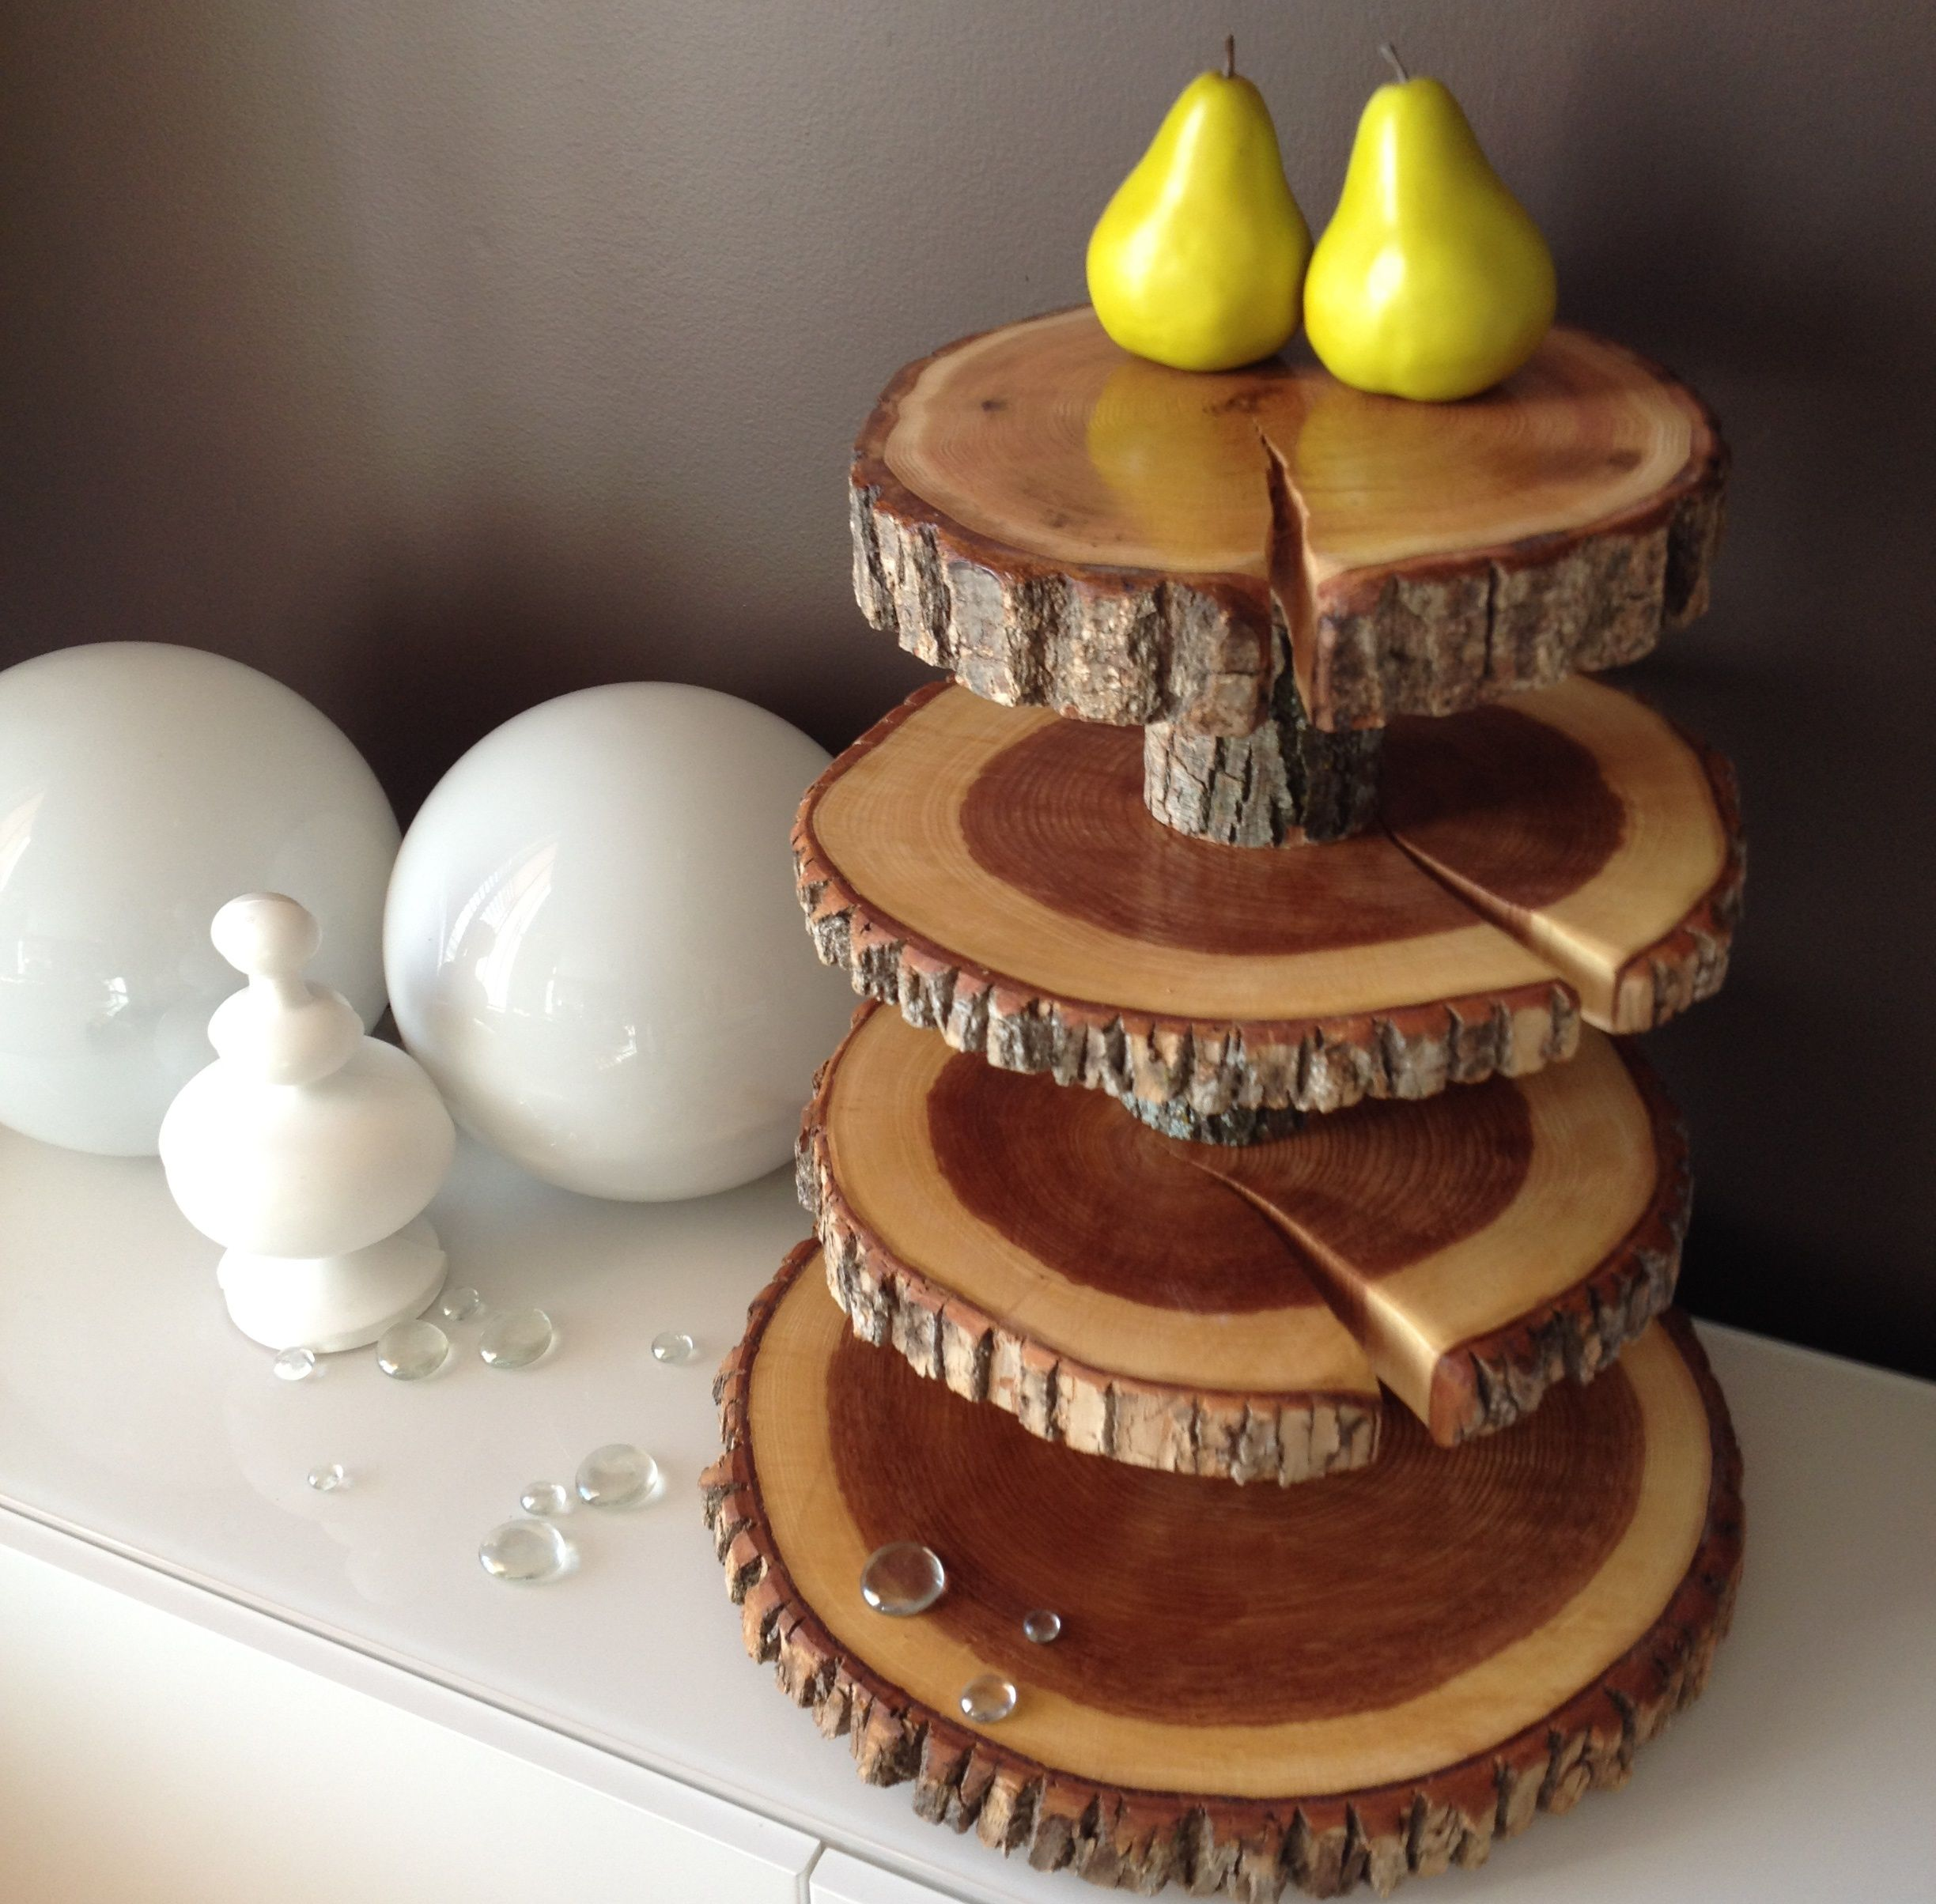 4 Tier Cupcake Stand, Rustic Cupcake Stands, Wood Rounds